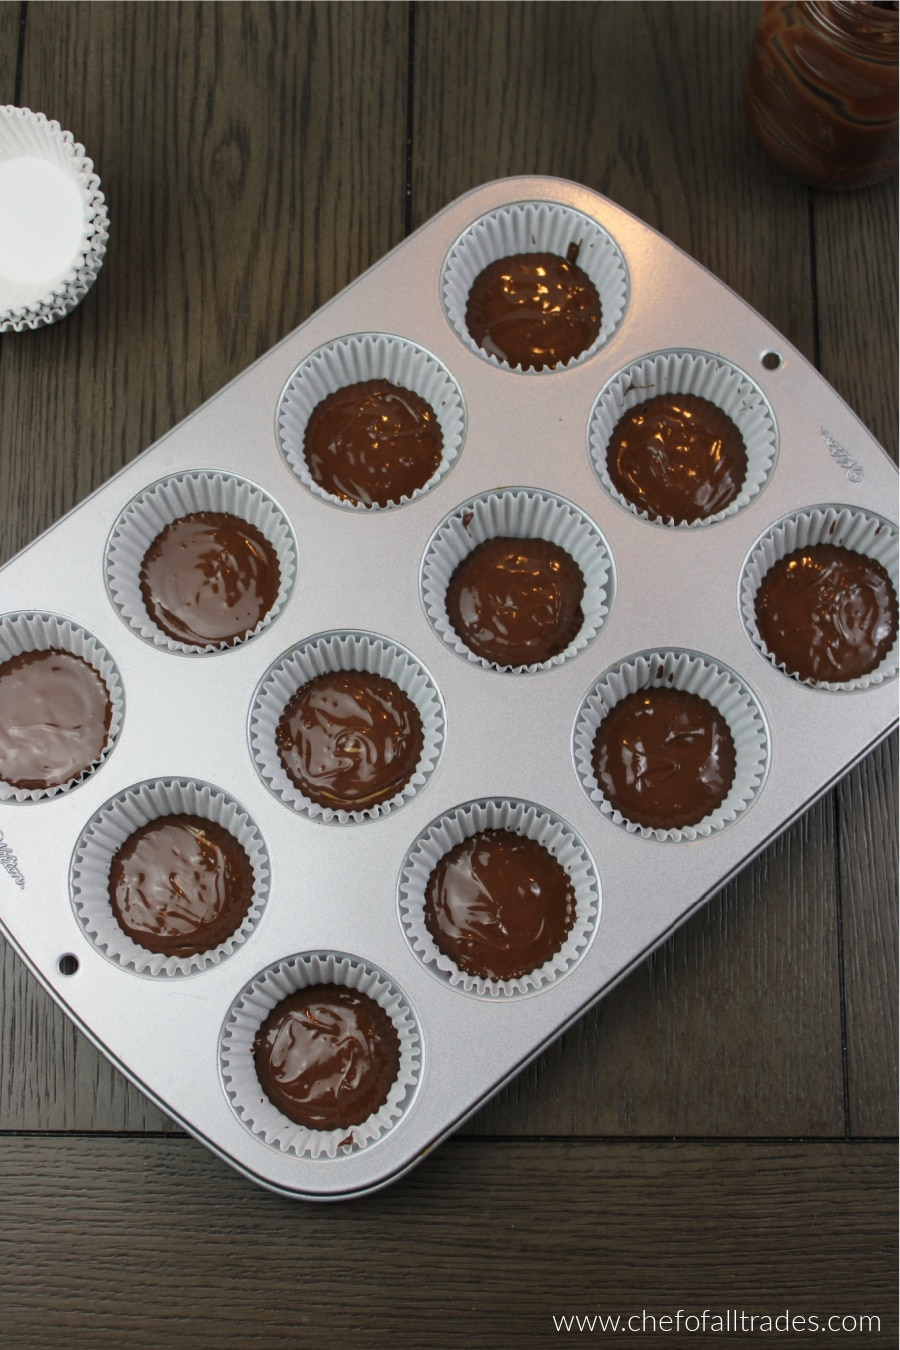 peanut butter topped with chocolate